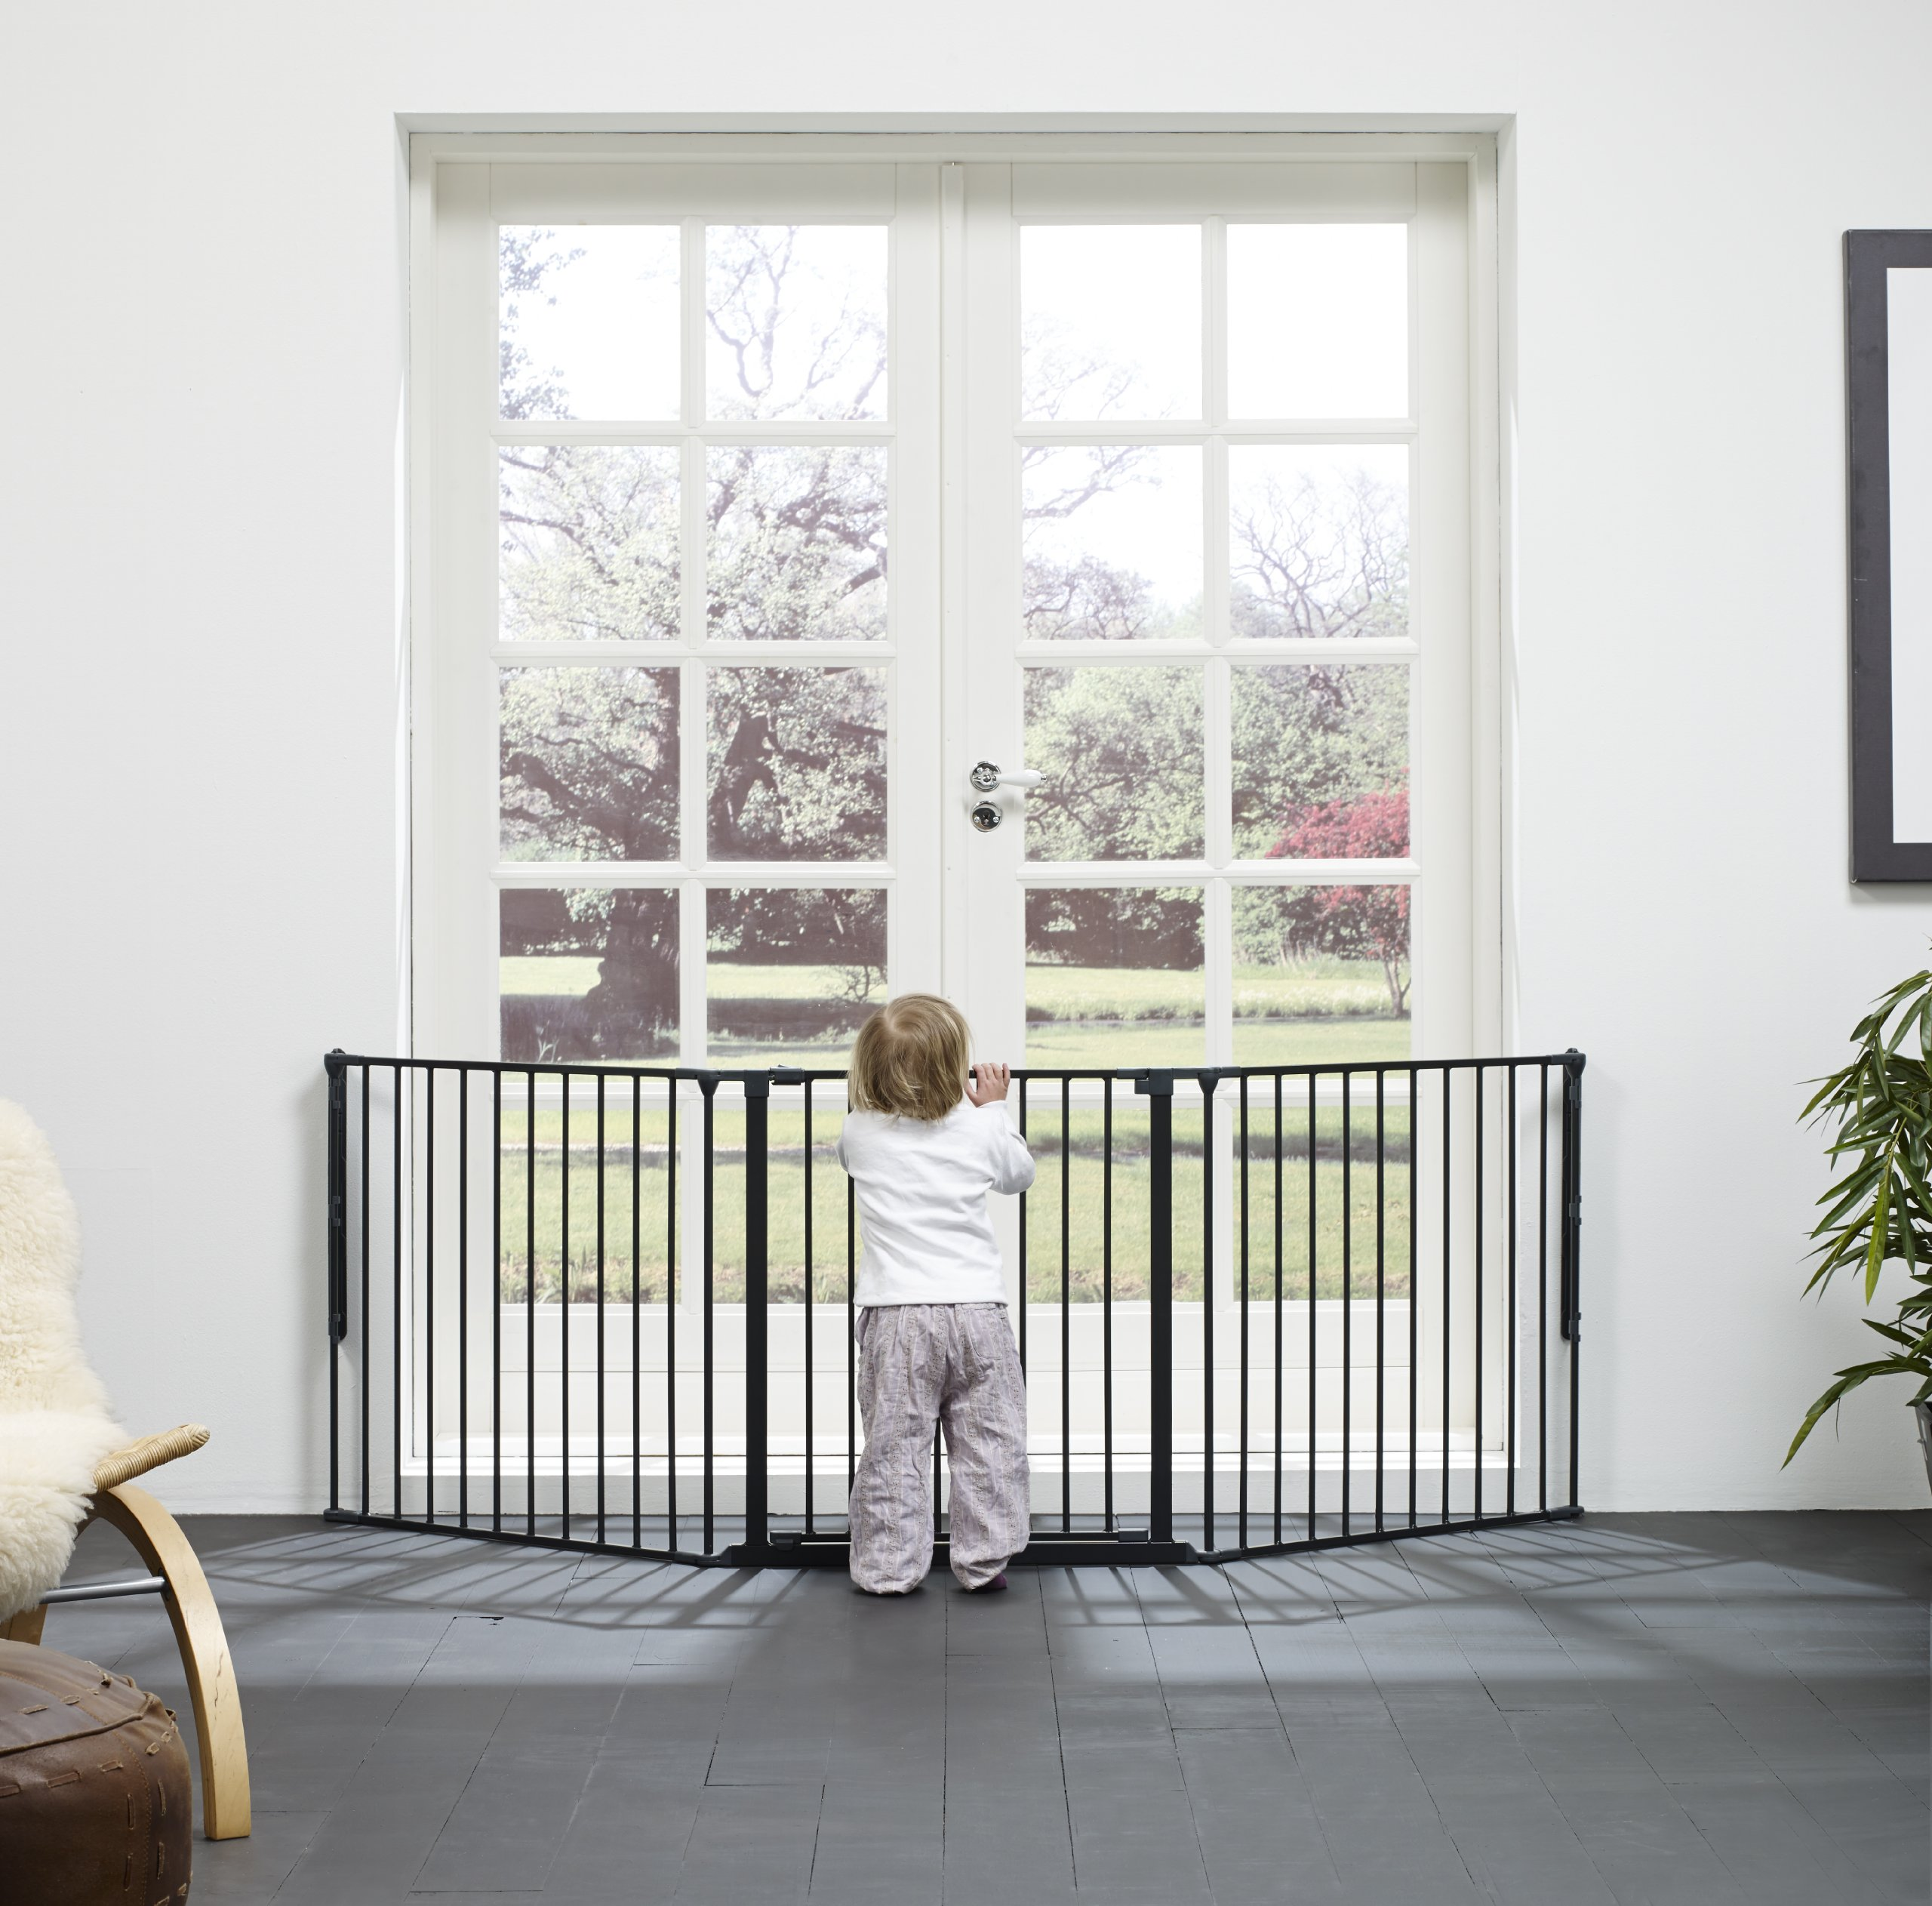 BabyDan Configure (Large 90-223cm, Anthracite) BabyDan Only configure system fulfilling newest european safety standard Multi purpose room divider and gate for wider openings Flexible and easy to fit 2